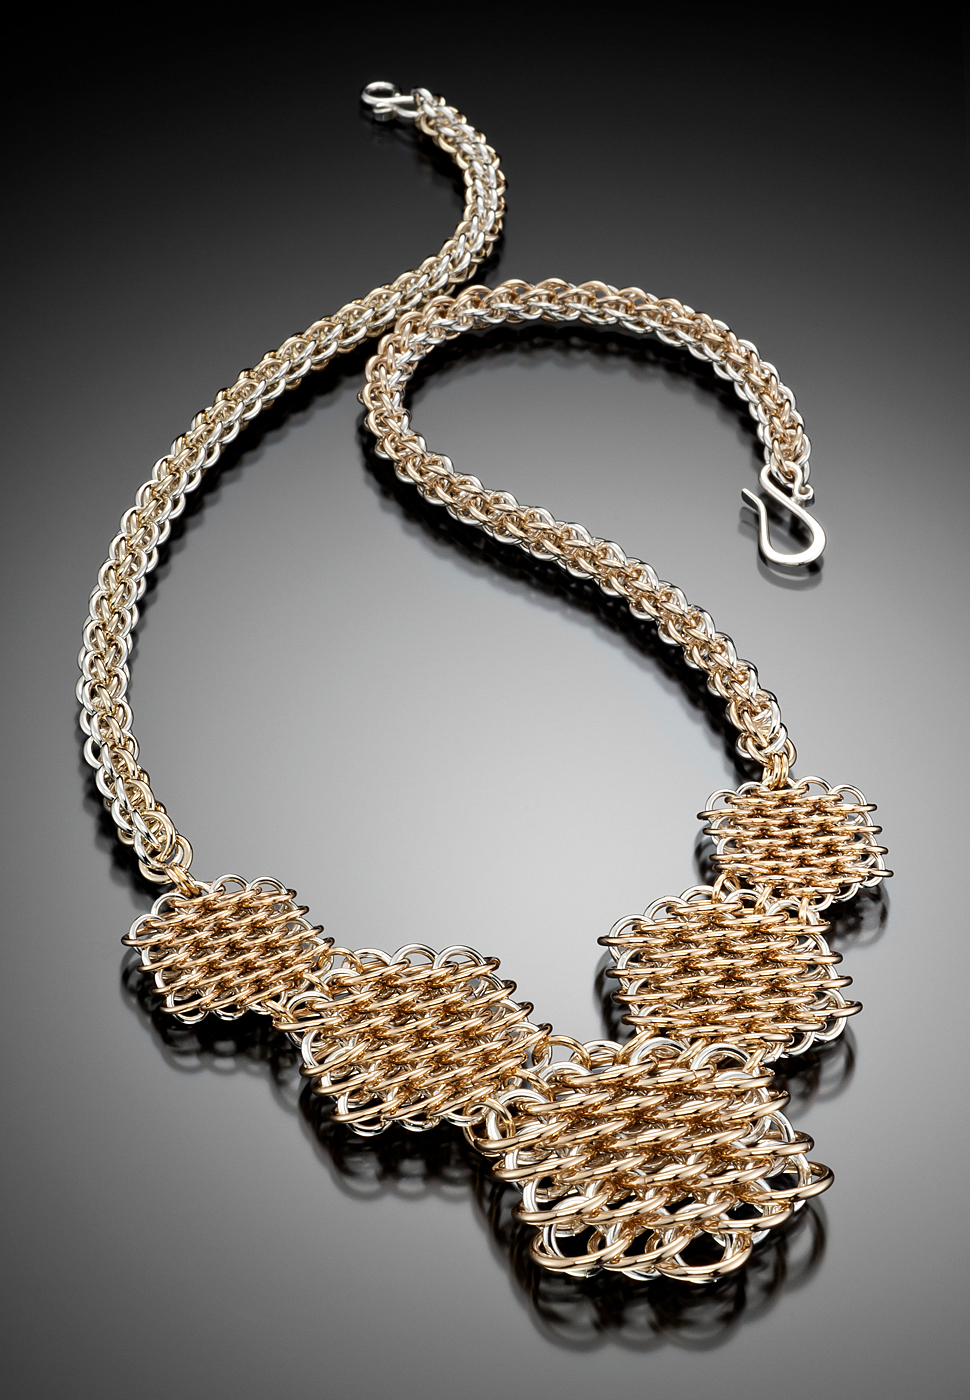 art jewelry please click on our gallery link to see more of our pieces. YRXWIBD